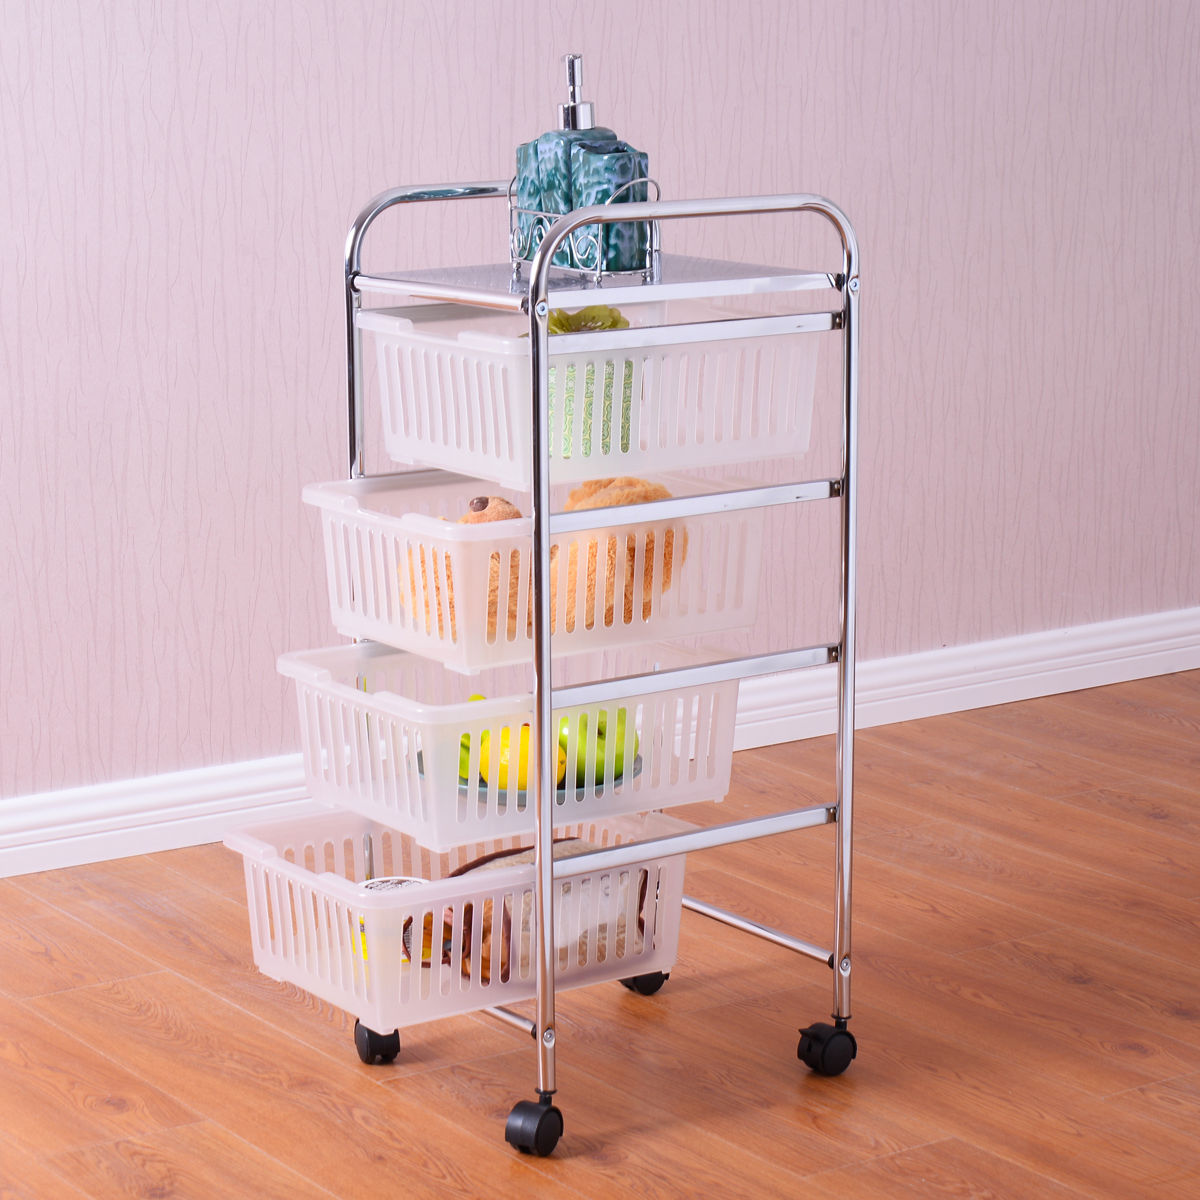 Goplus 5 Tier Bathroom Storage Trolley Rolling Cart Rack Steel Storage Basket Shelf Home Kitchen Bathroom Furniture HW54121